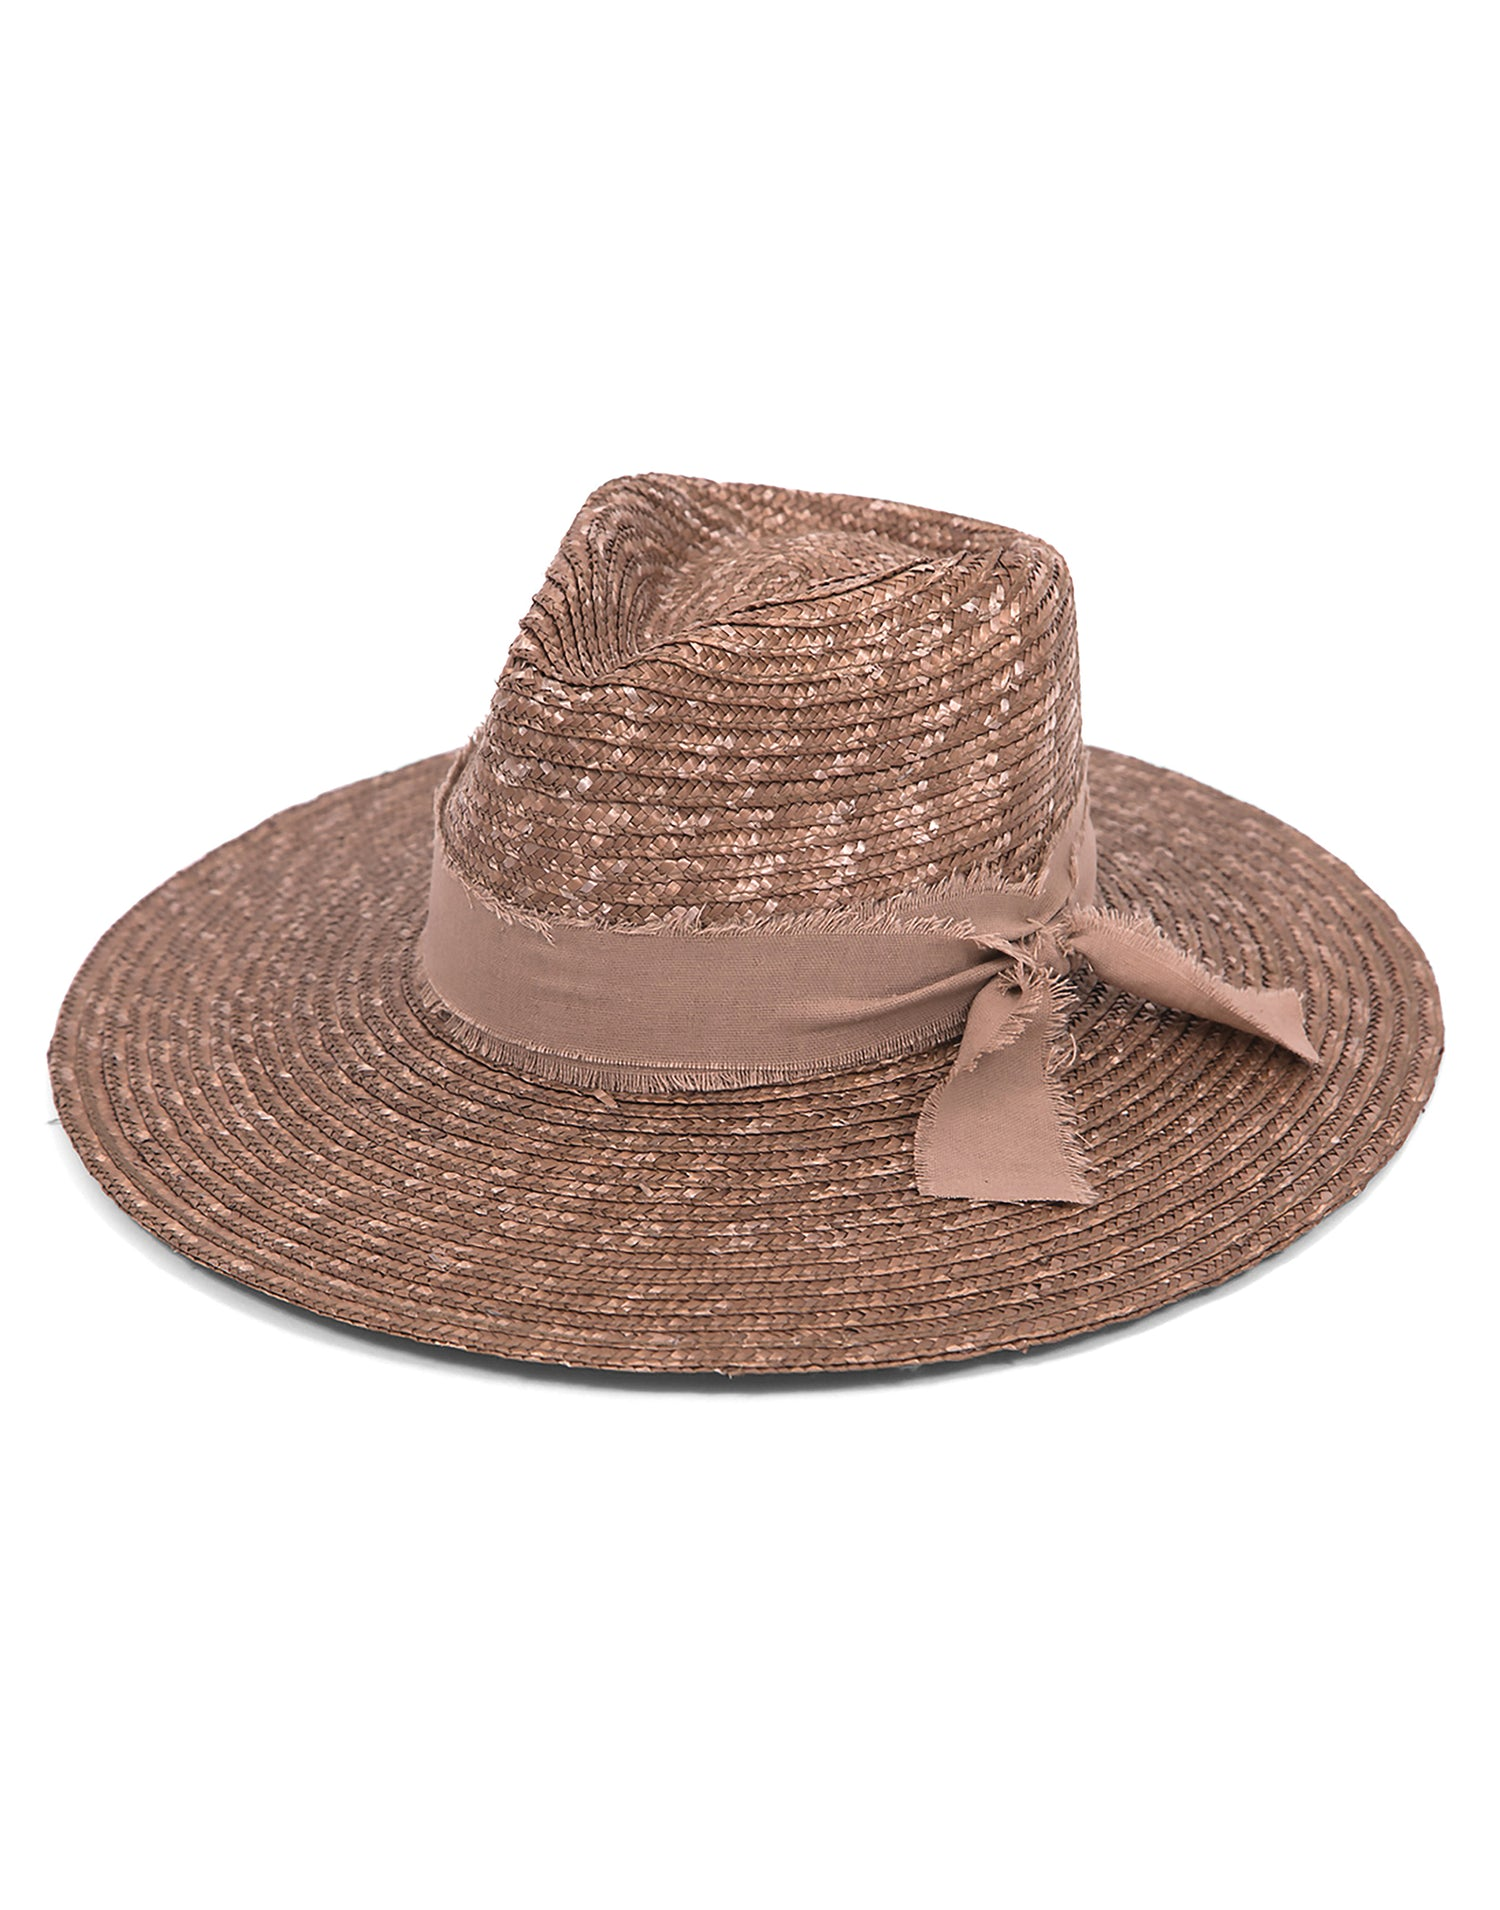 Ale by Alessandra's Solange Straw Hat with Decorative Linen Trim in Bronze - product view